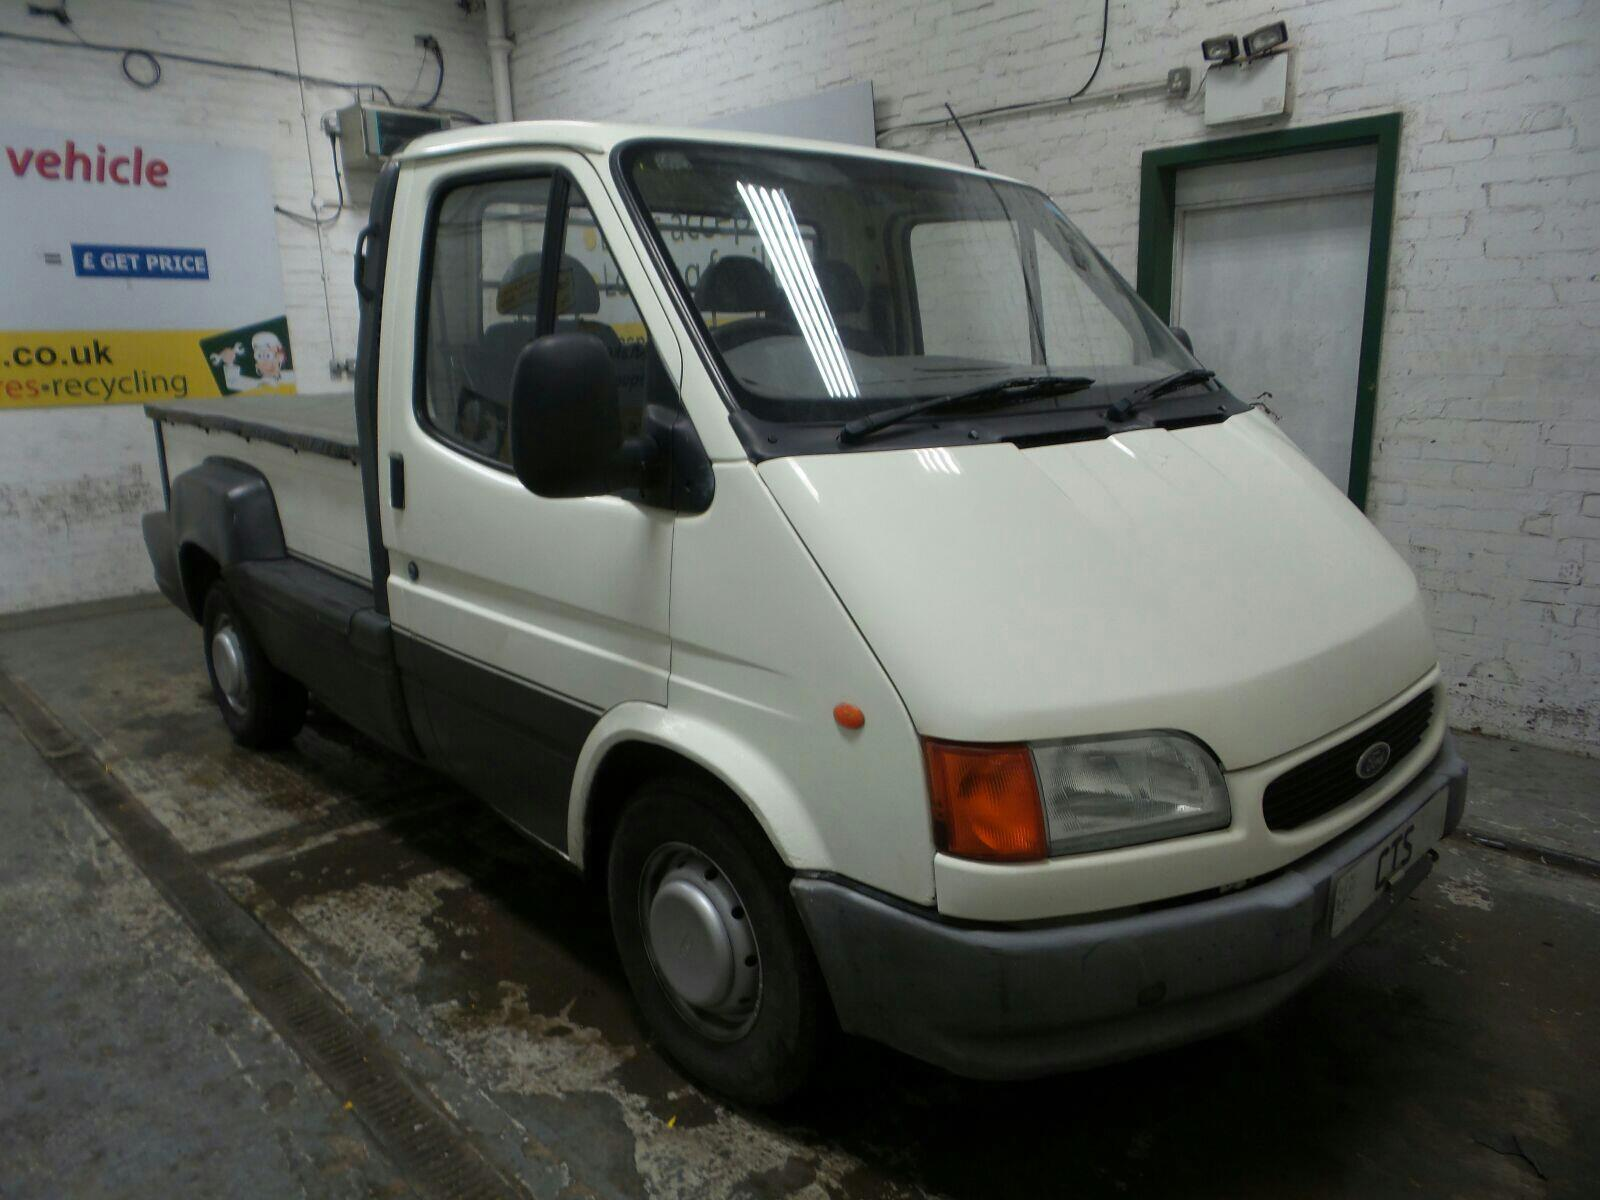 1999 Ford Transit 1995 To 2000 L.C.V.